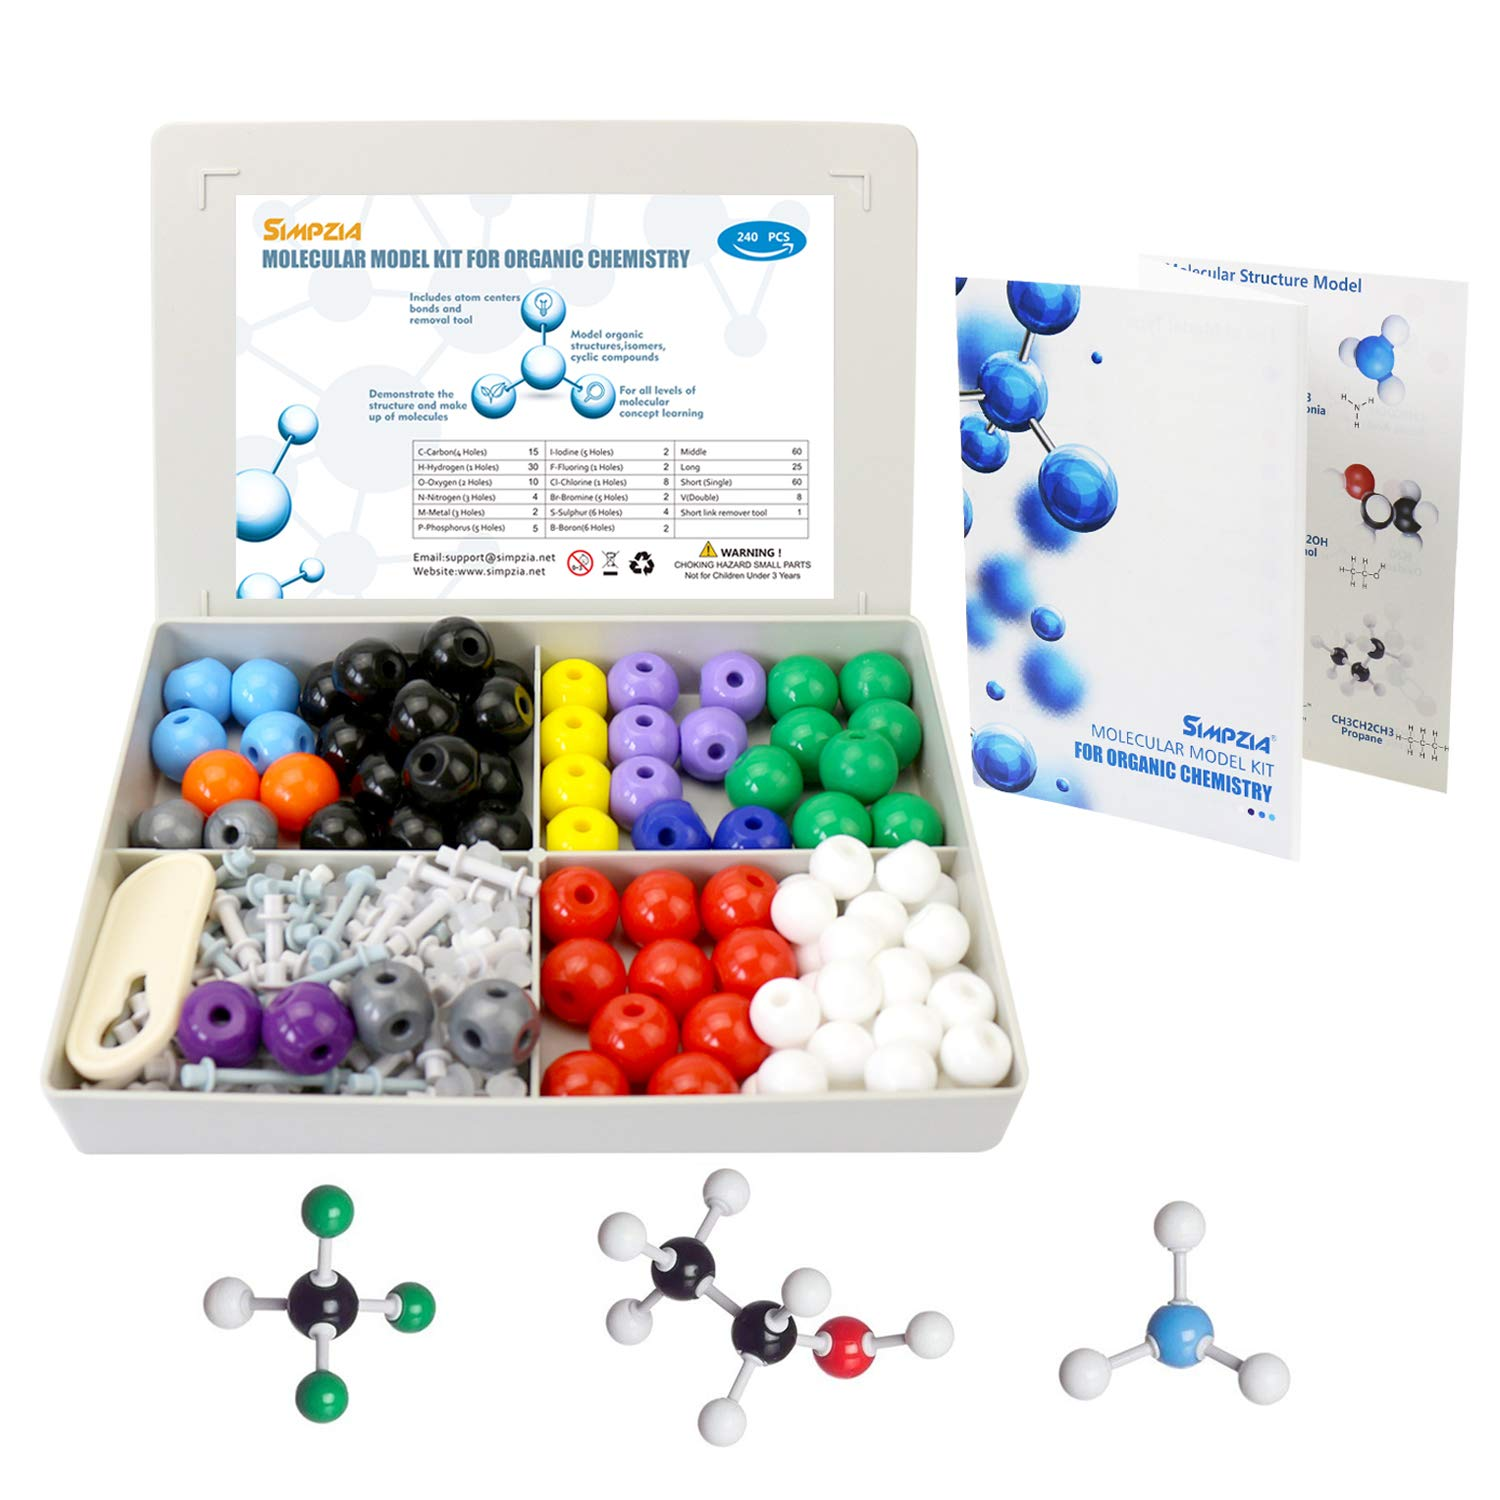 SIMPZIA 240 Pcs Organic Chemistry Model Kit  Molecular Model kit, Chemistry Organic and Inorganic Modeling Students Set with Manual & Atoms, Bonds for Students, Teachers & Scientists by SIMPZIA (Image #7)